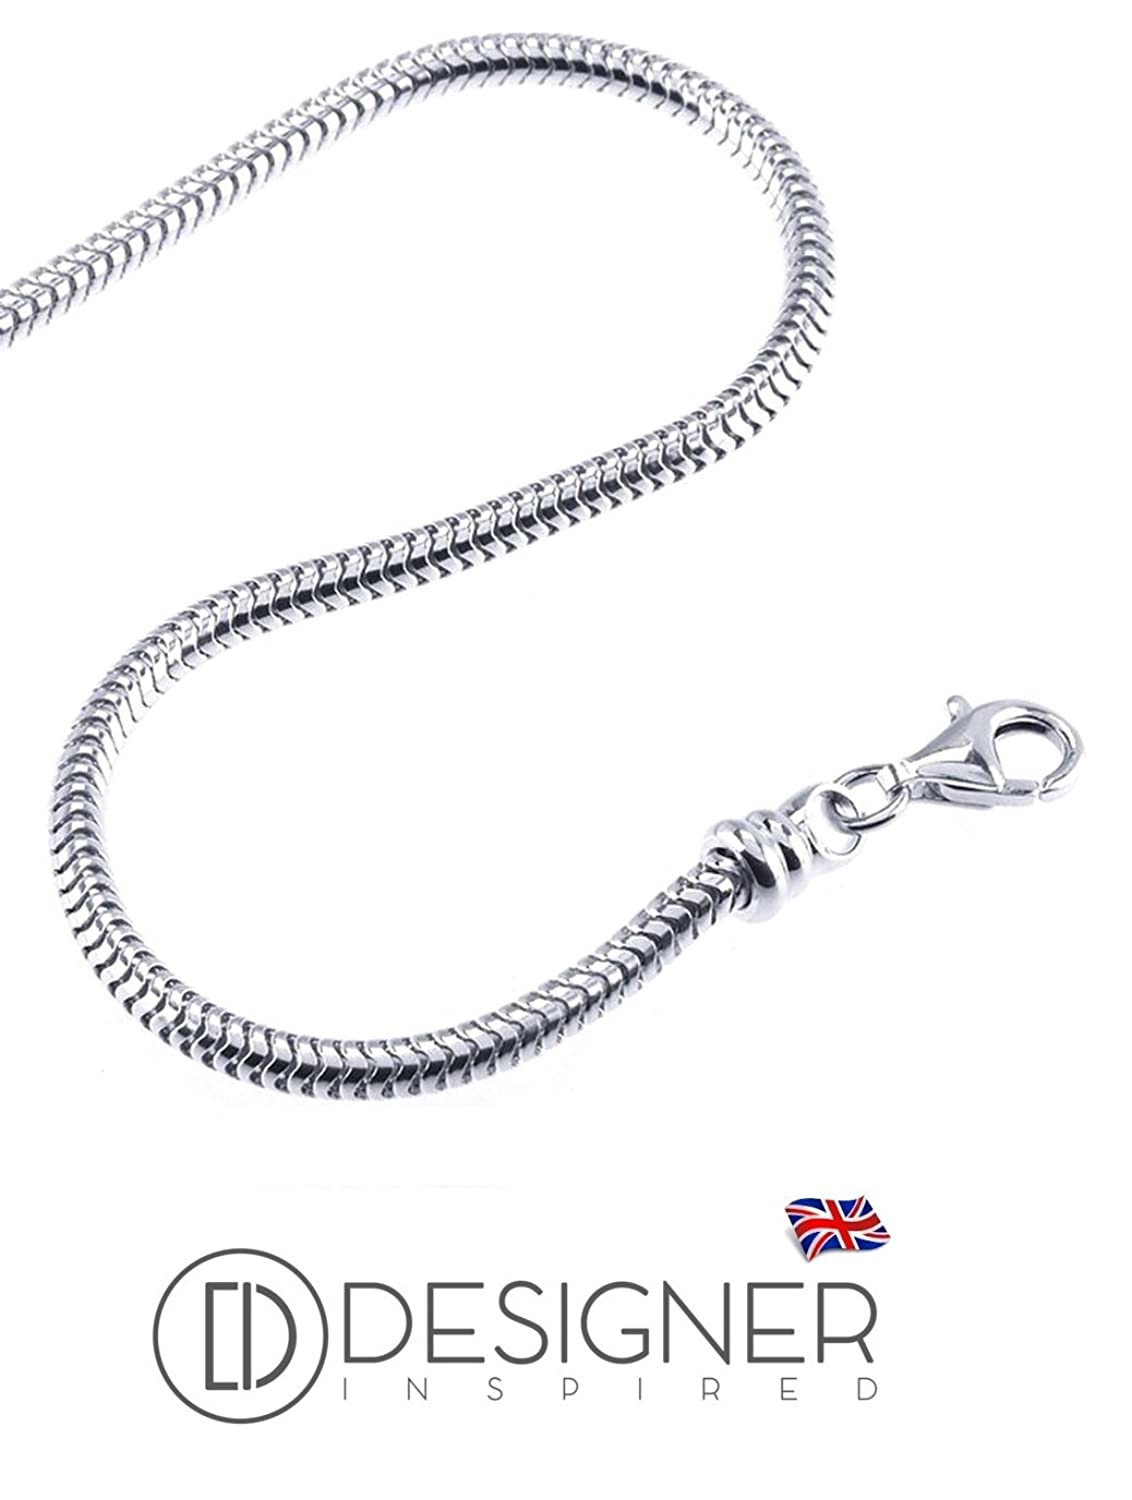 Designer Inspired Sterling Silver 2mm Snake Necklace Chain 15g 18 inches With Lobster Clasp wvjgm